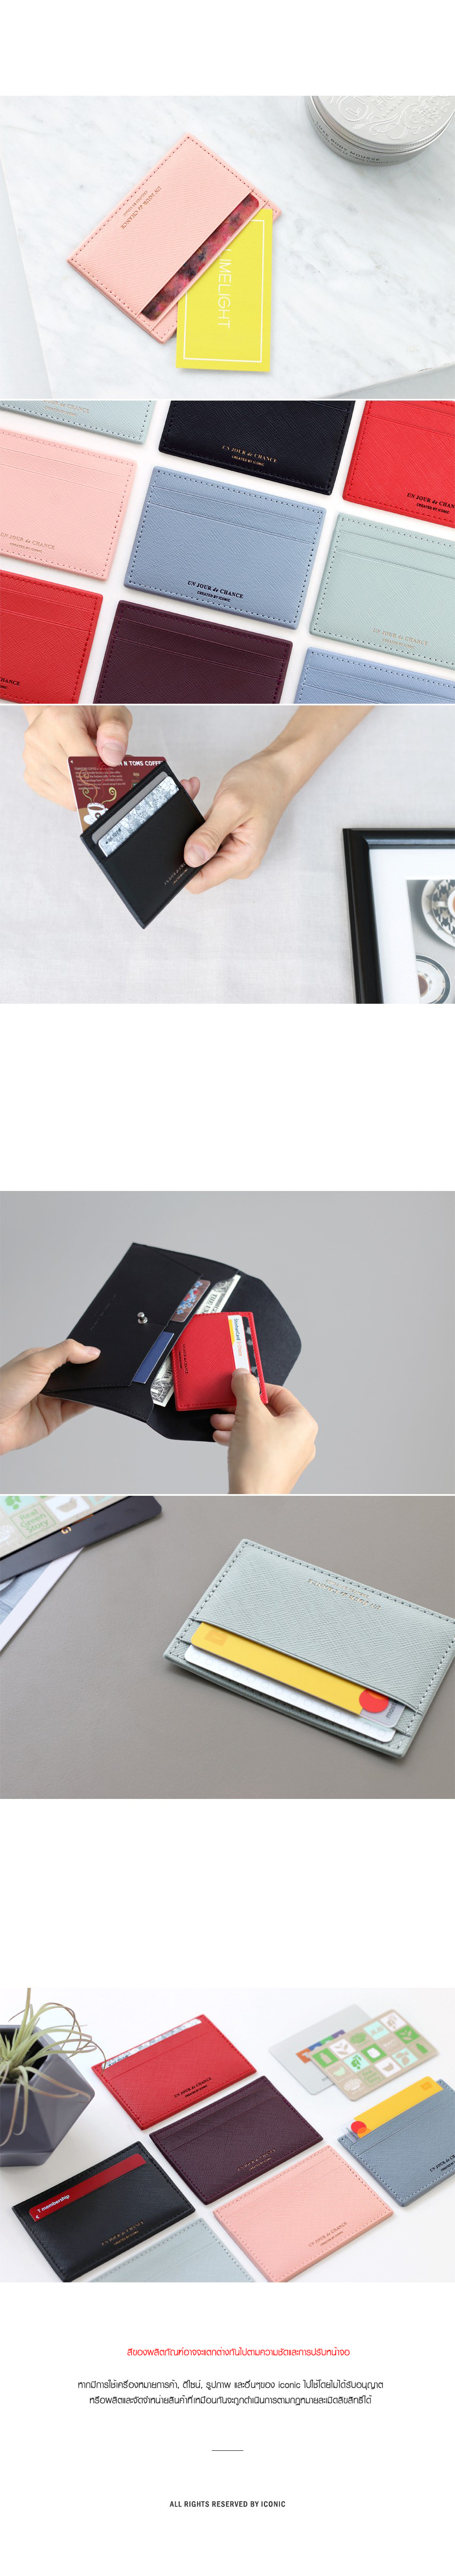 flat-card-pocket-v.2-d5.jpg